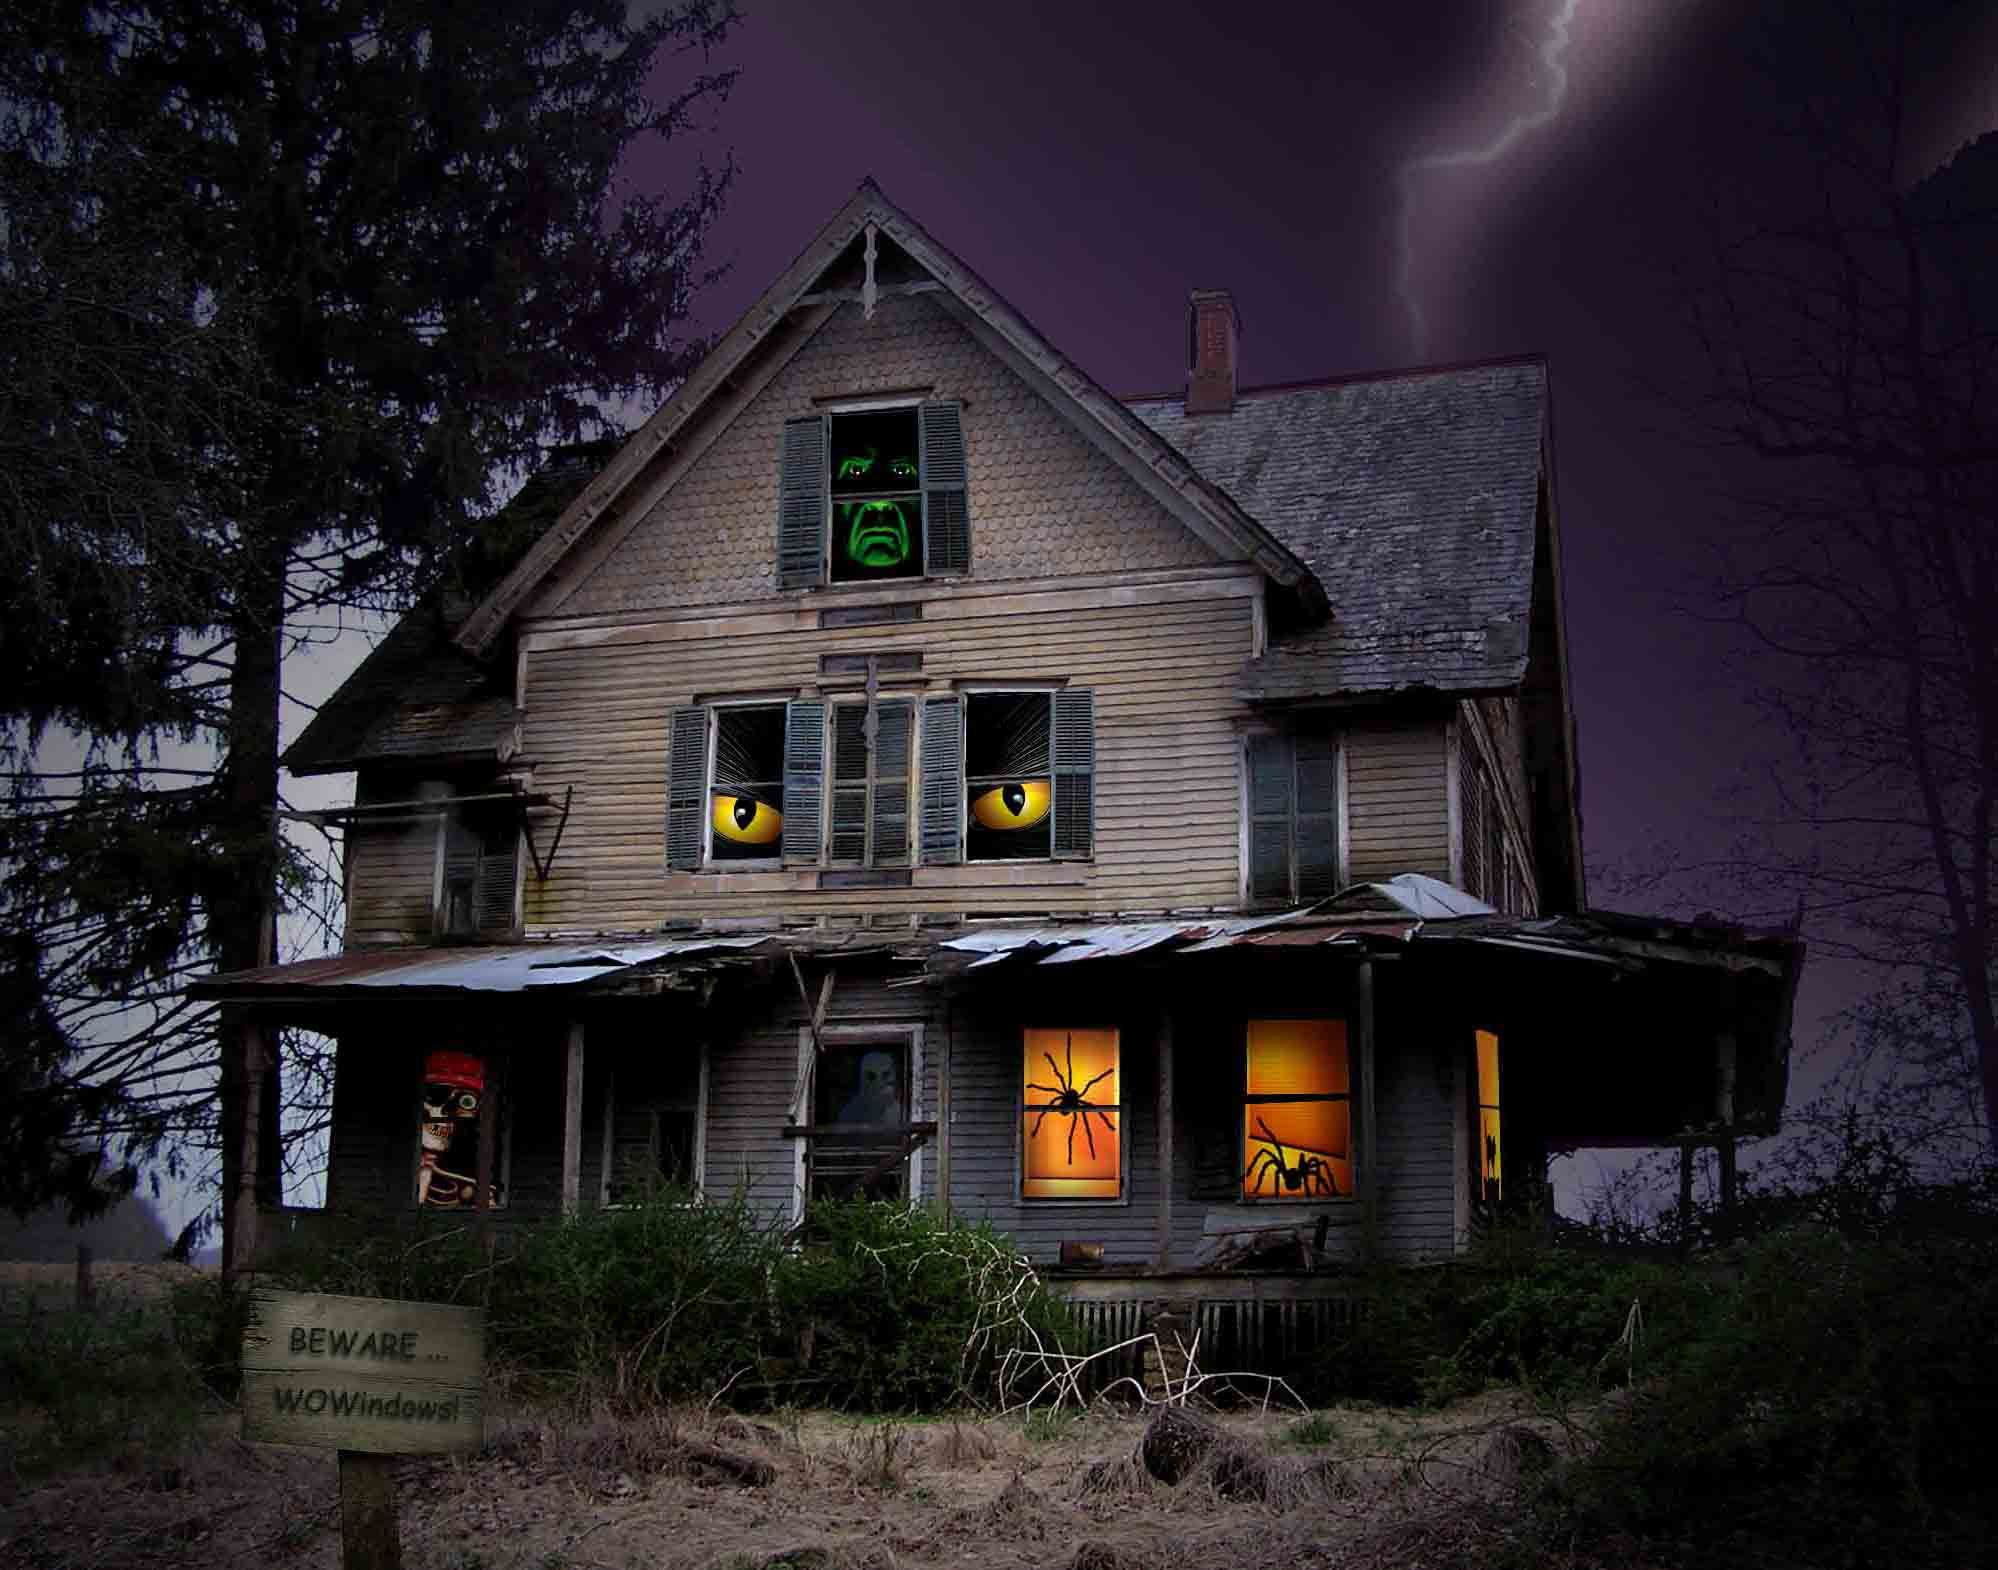 45 Scary Halloween 2012 HD Wallpapers